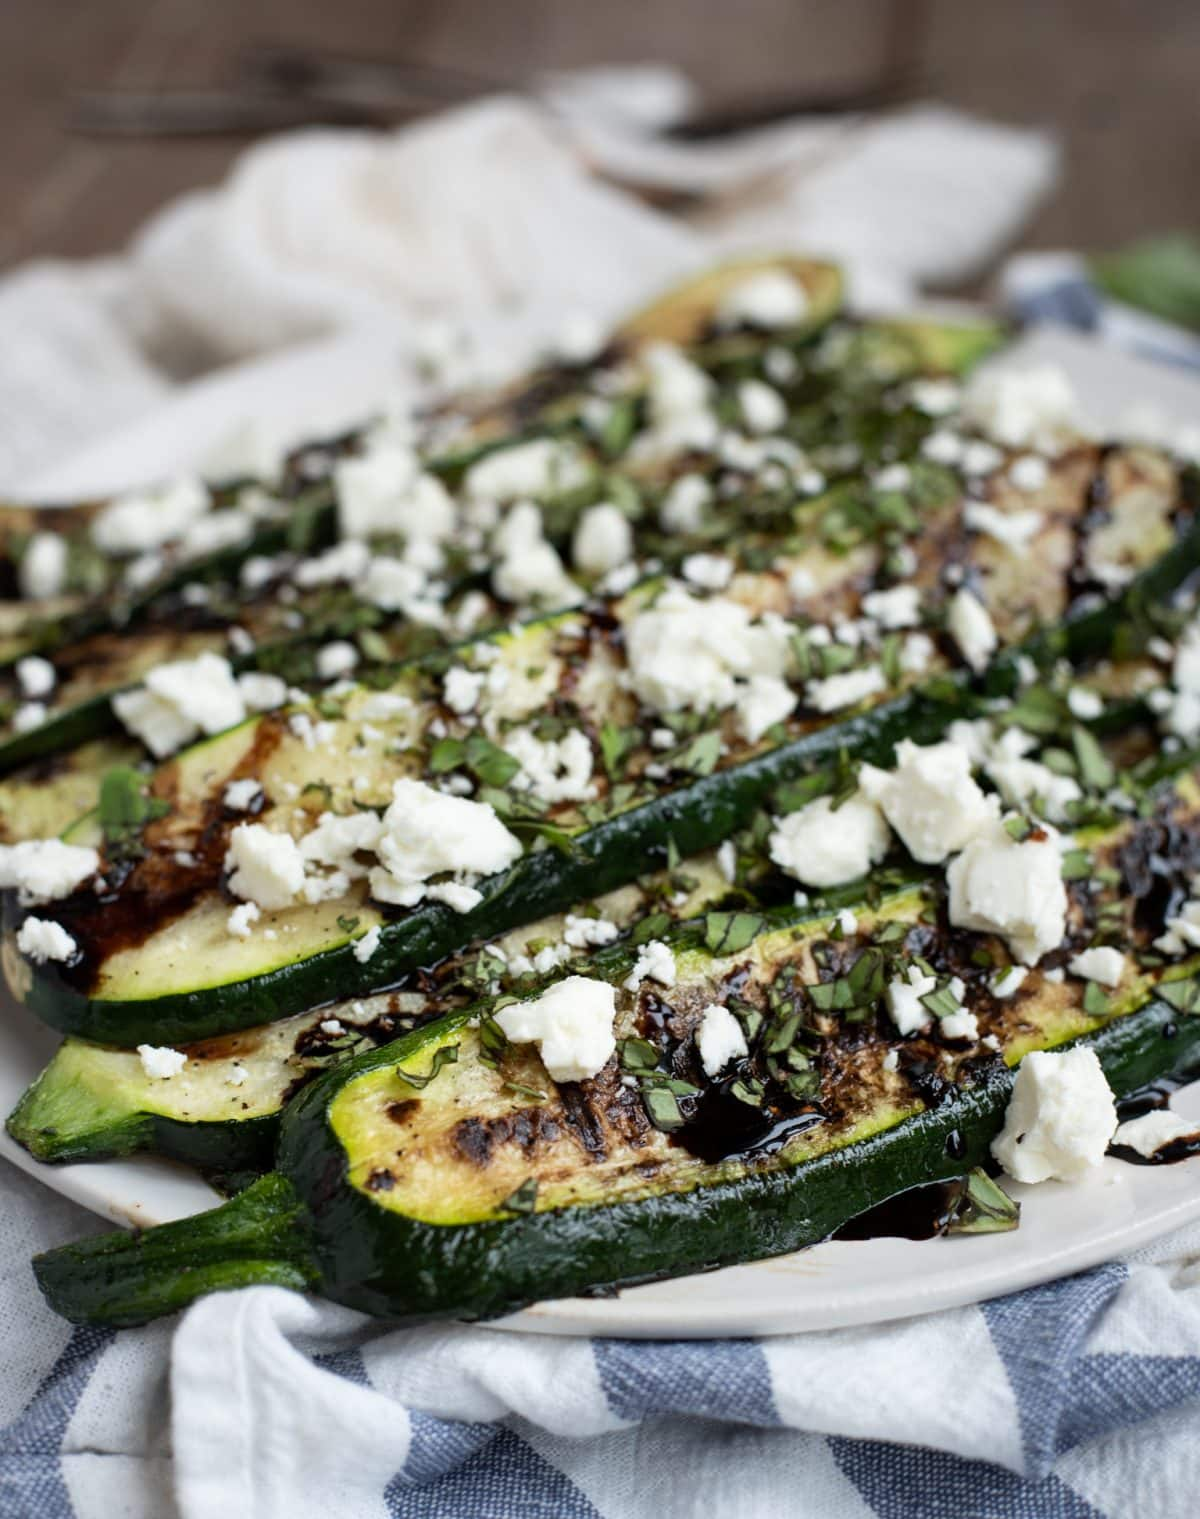 Grilled Zucchini with Balsamic